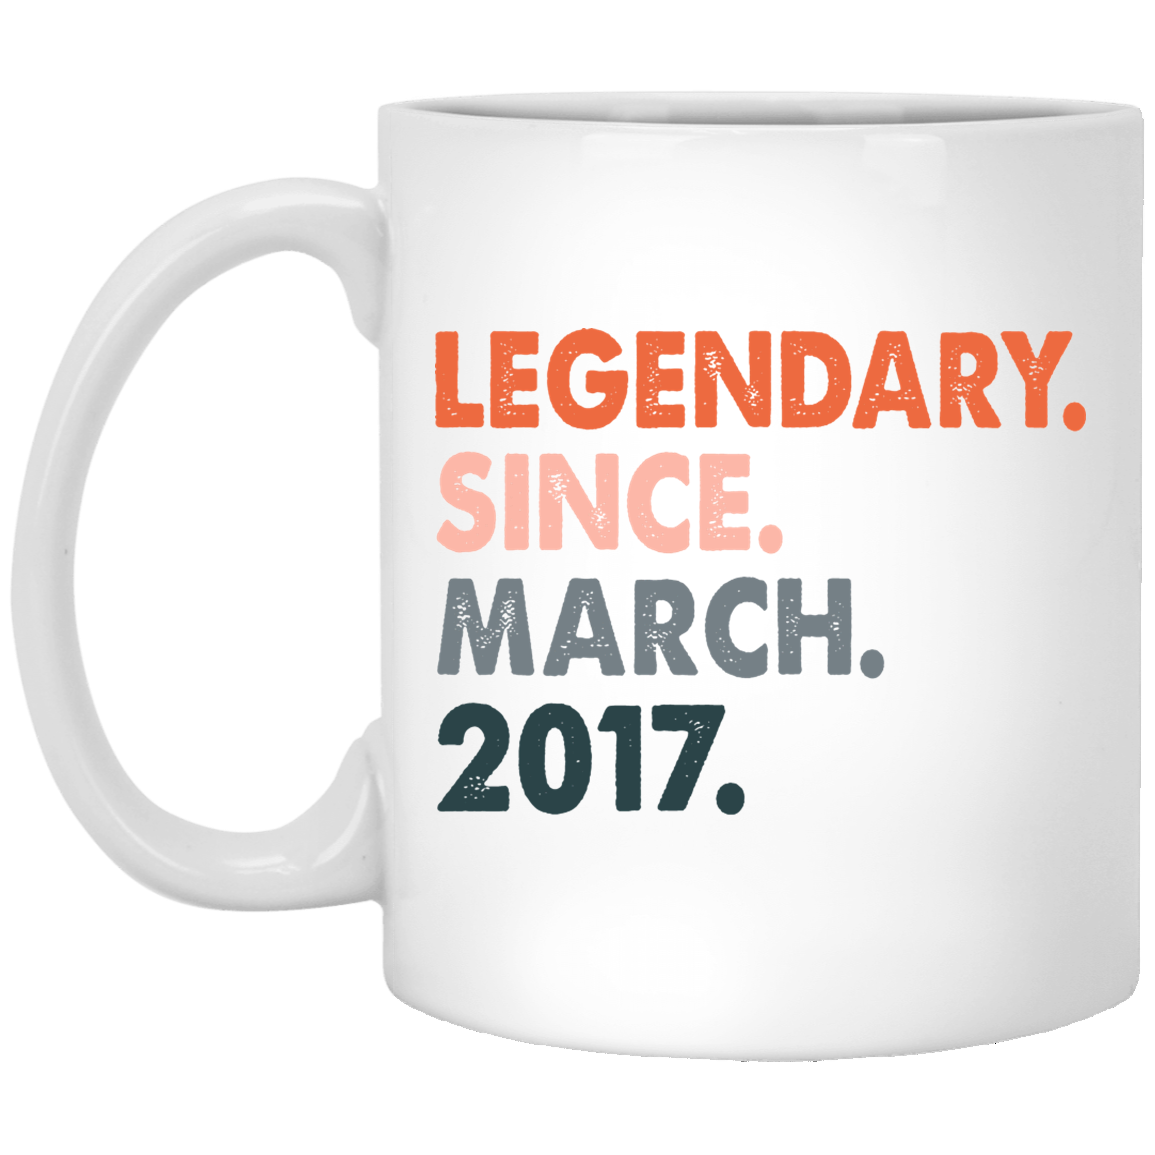 4th-Birthday-Ideas-for-Women-and-Men-Legendary-Since-March-2017 Funny Quotes Coffee Mug 99promocode